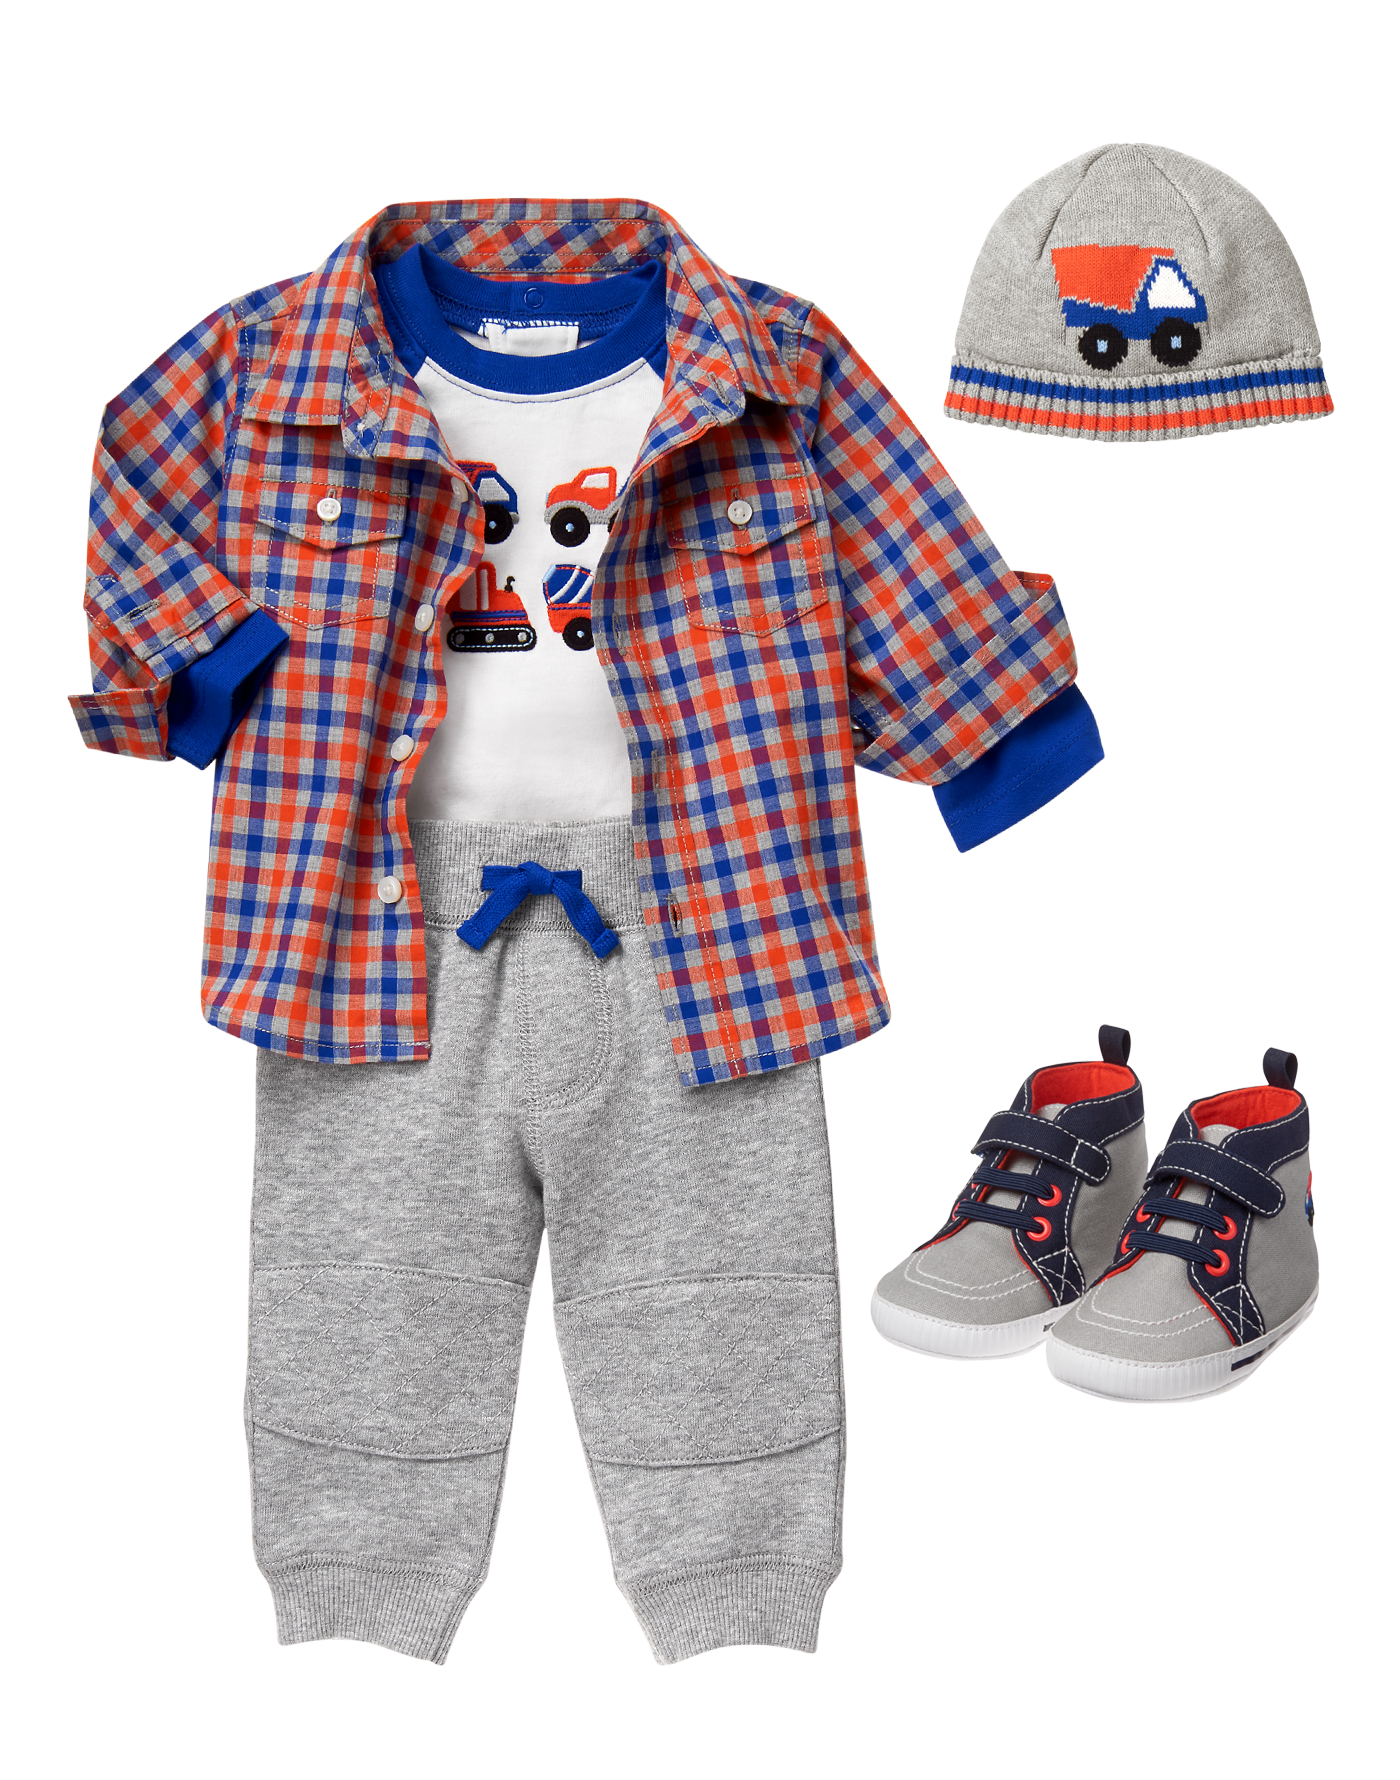 c38296b66021 So cute! Adorable baby boy outfit. affiliate link